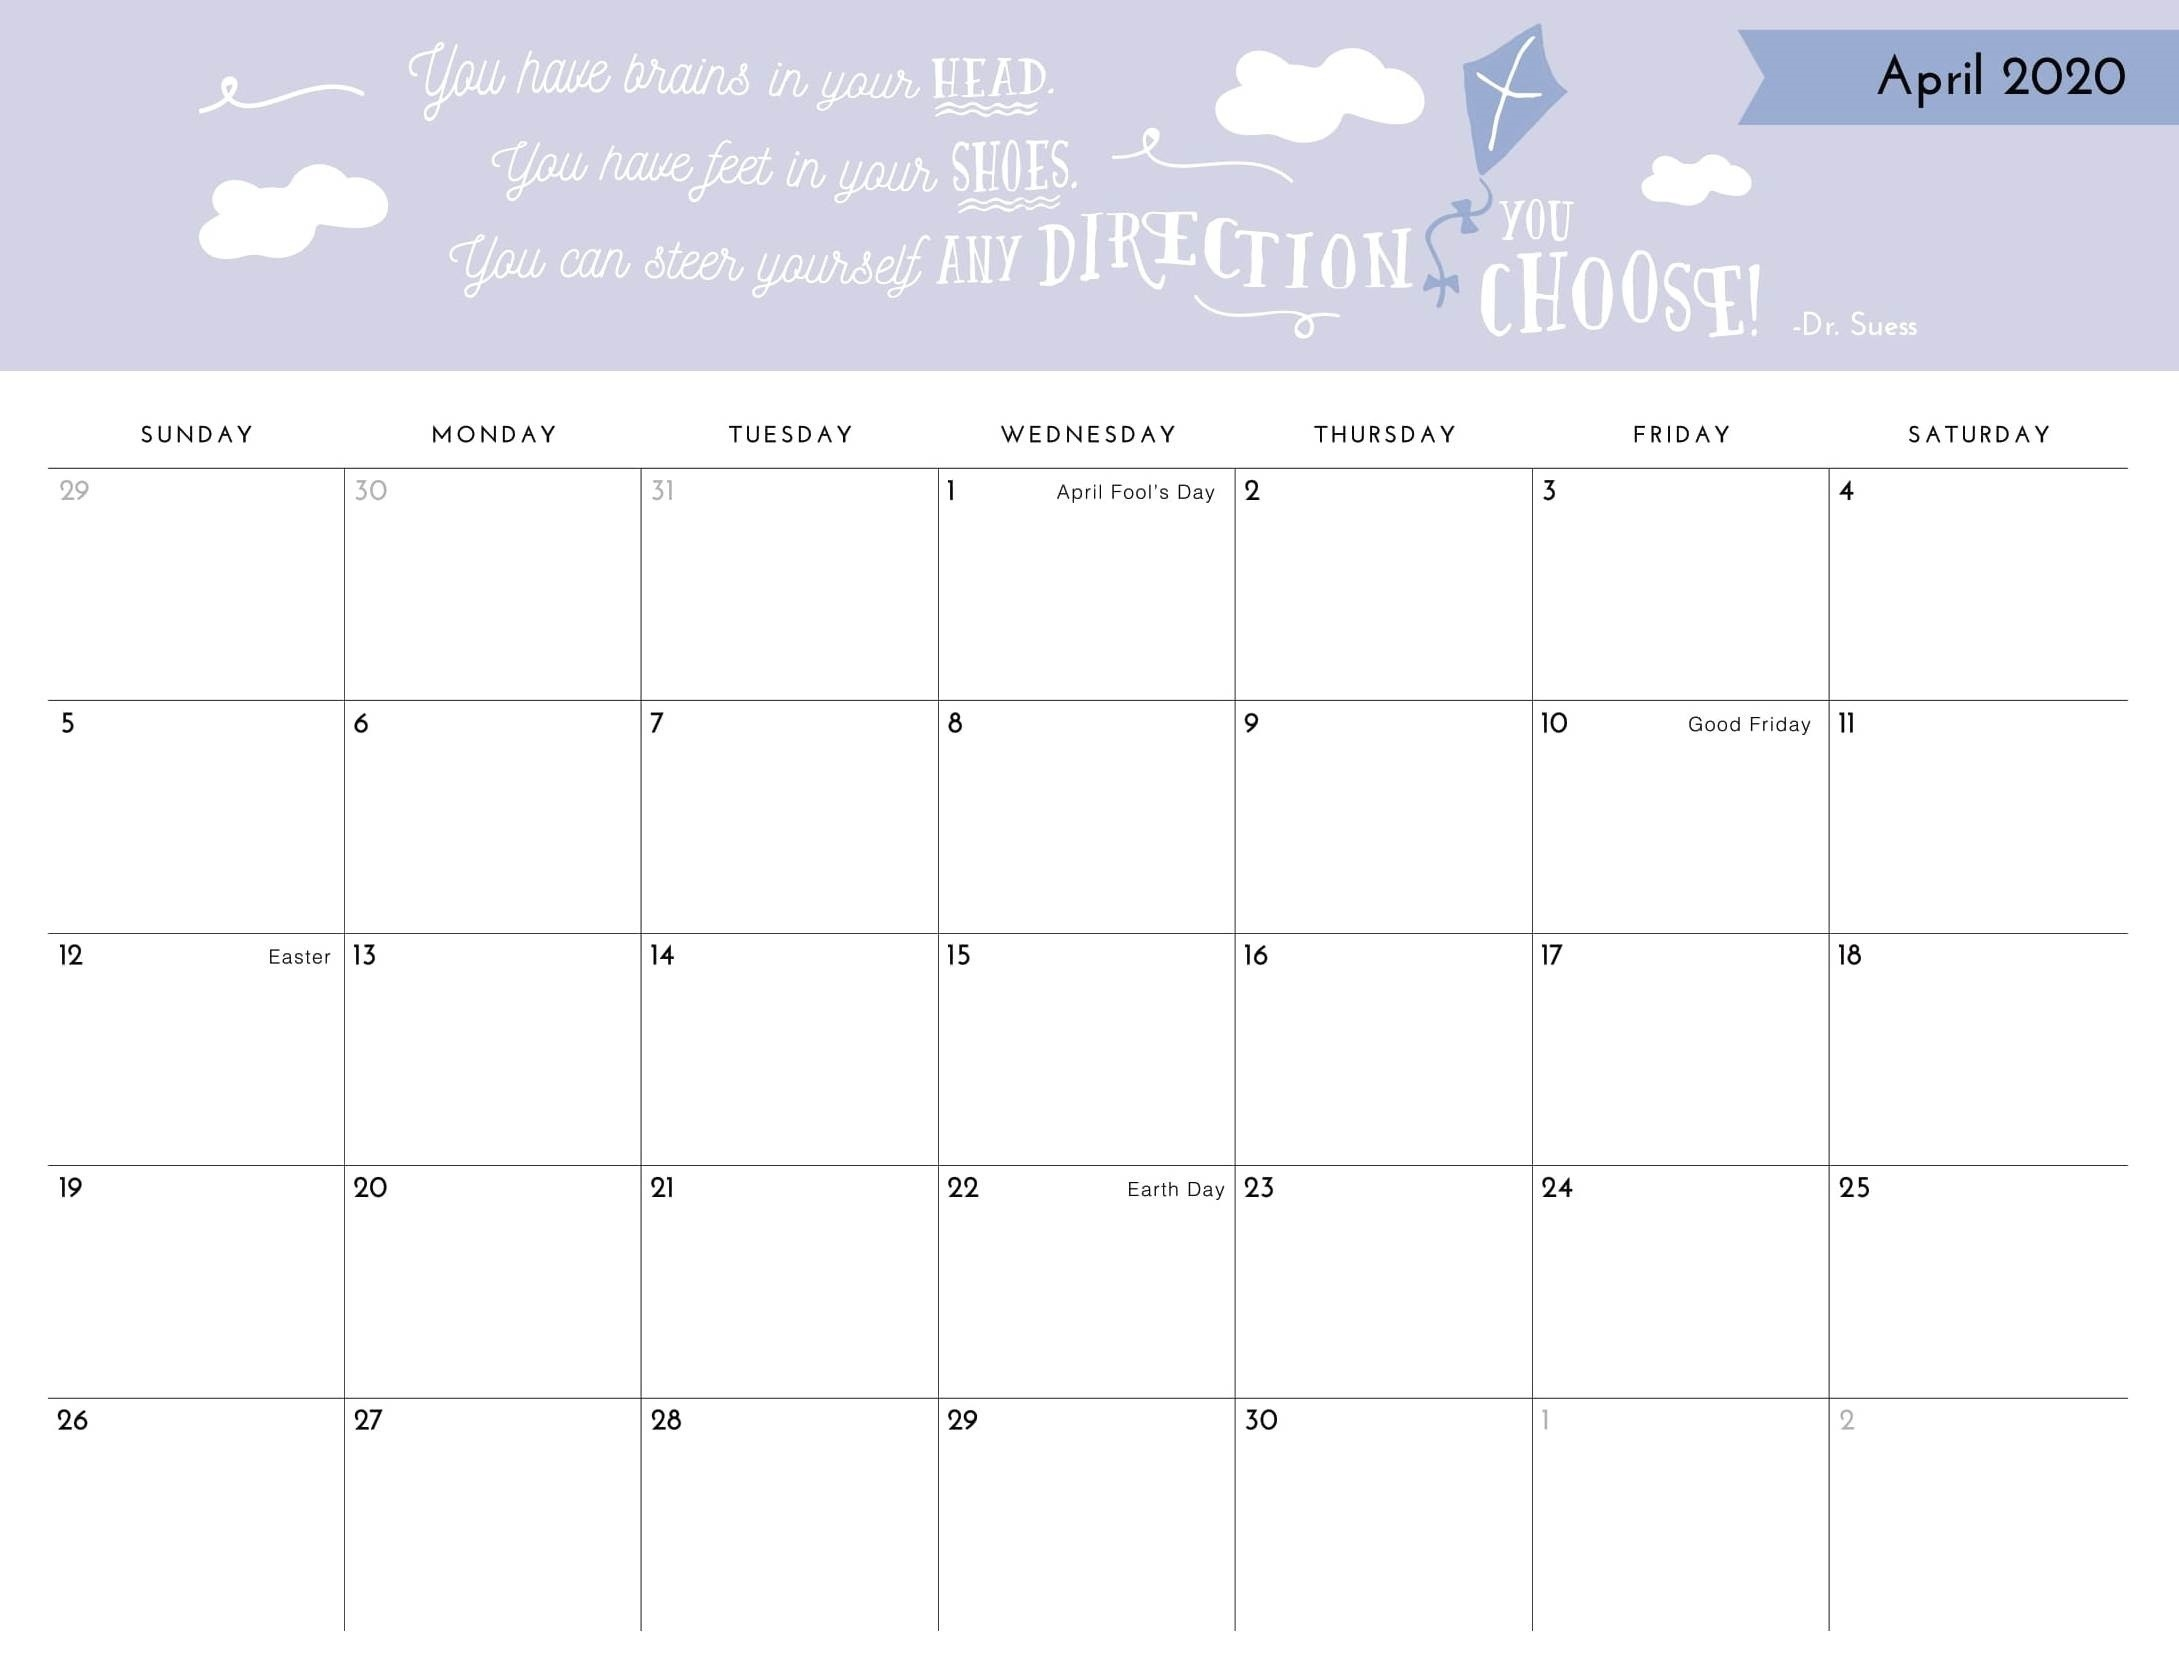 April 2020 Printable Calendar Template With Holidays - Web-Day To Day Calendar Template 2020